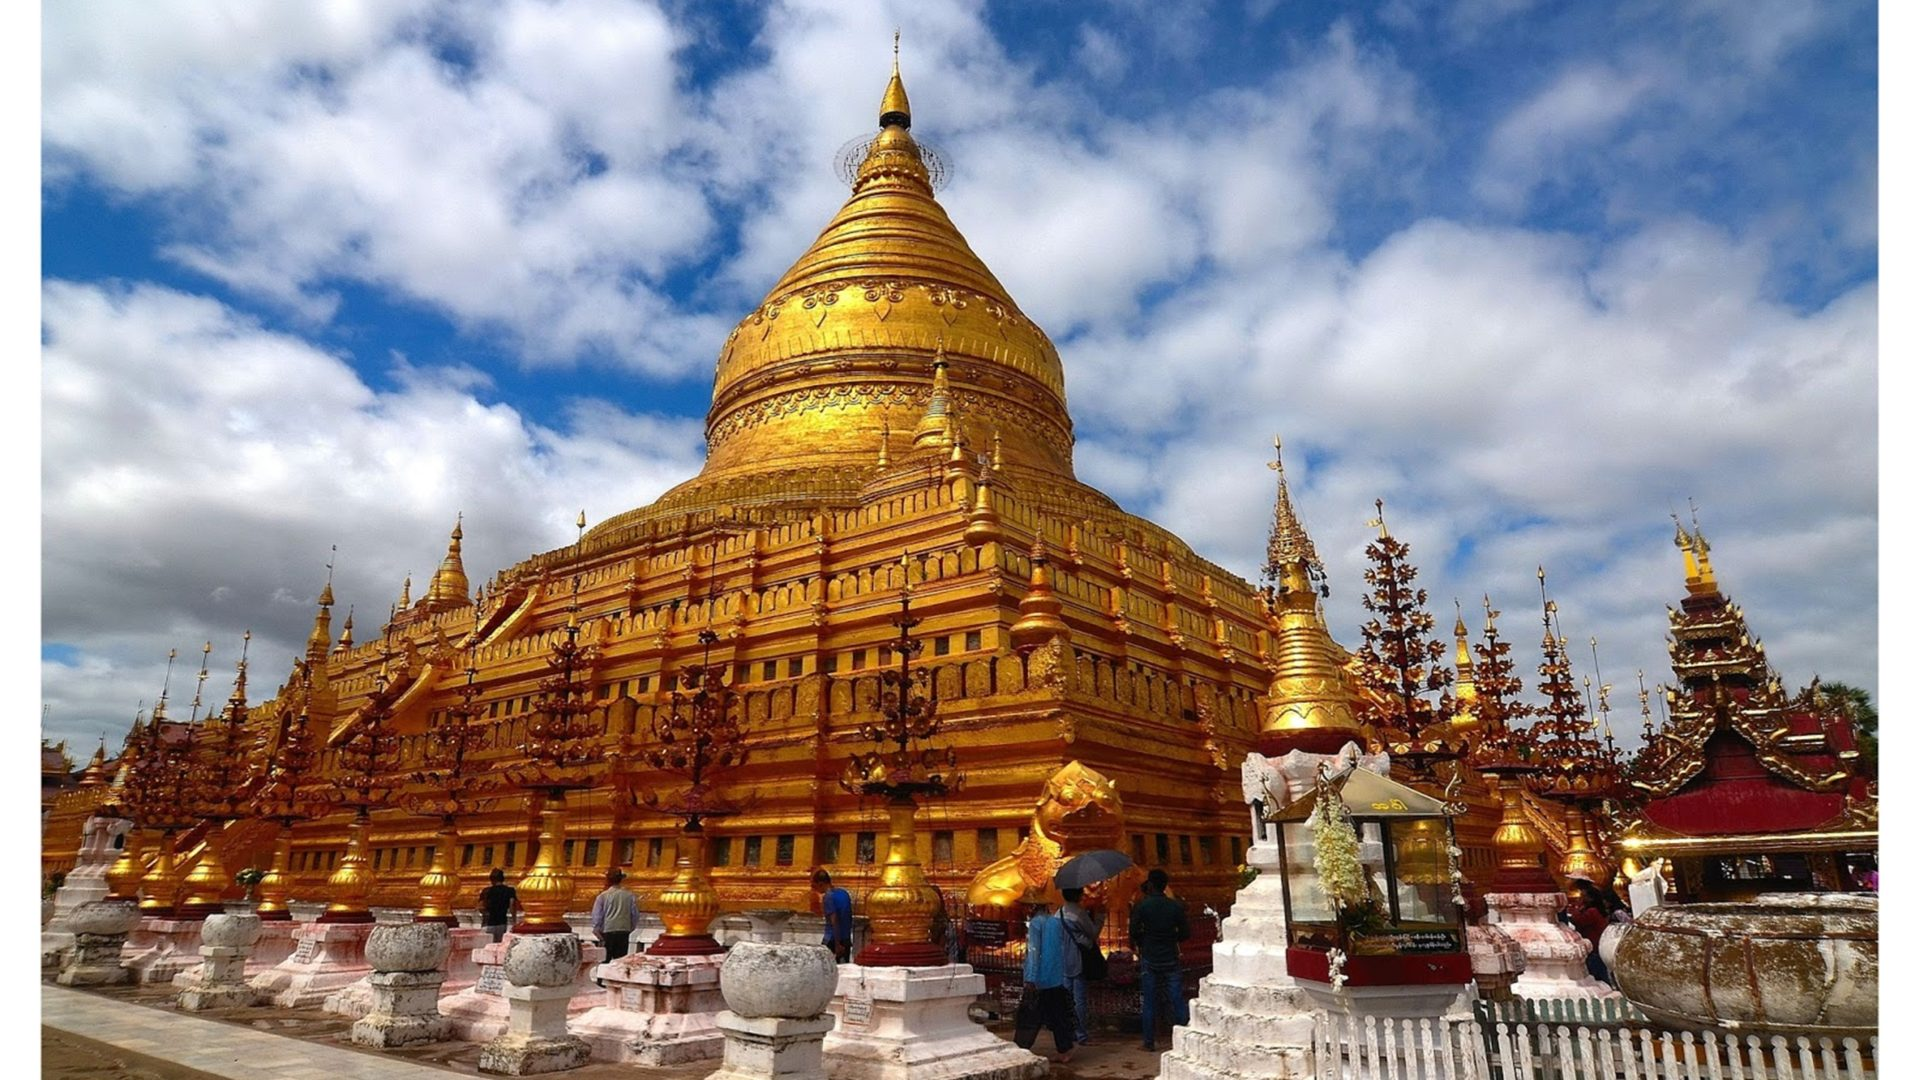 Nice Cars Wallpapers Download Kuthodaw Pagoda Mandalay Burma Wallpapers13 Com